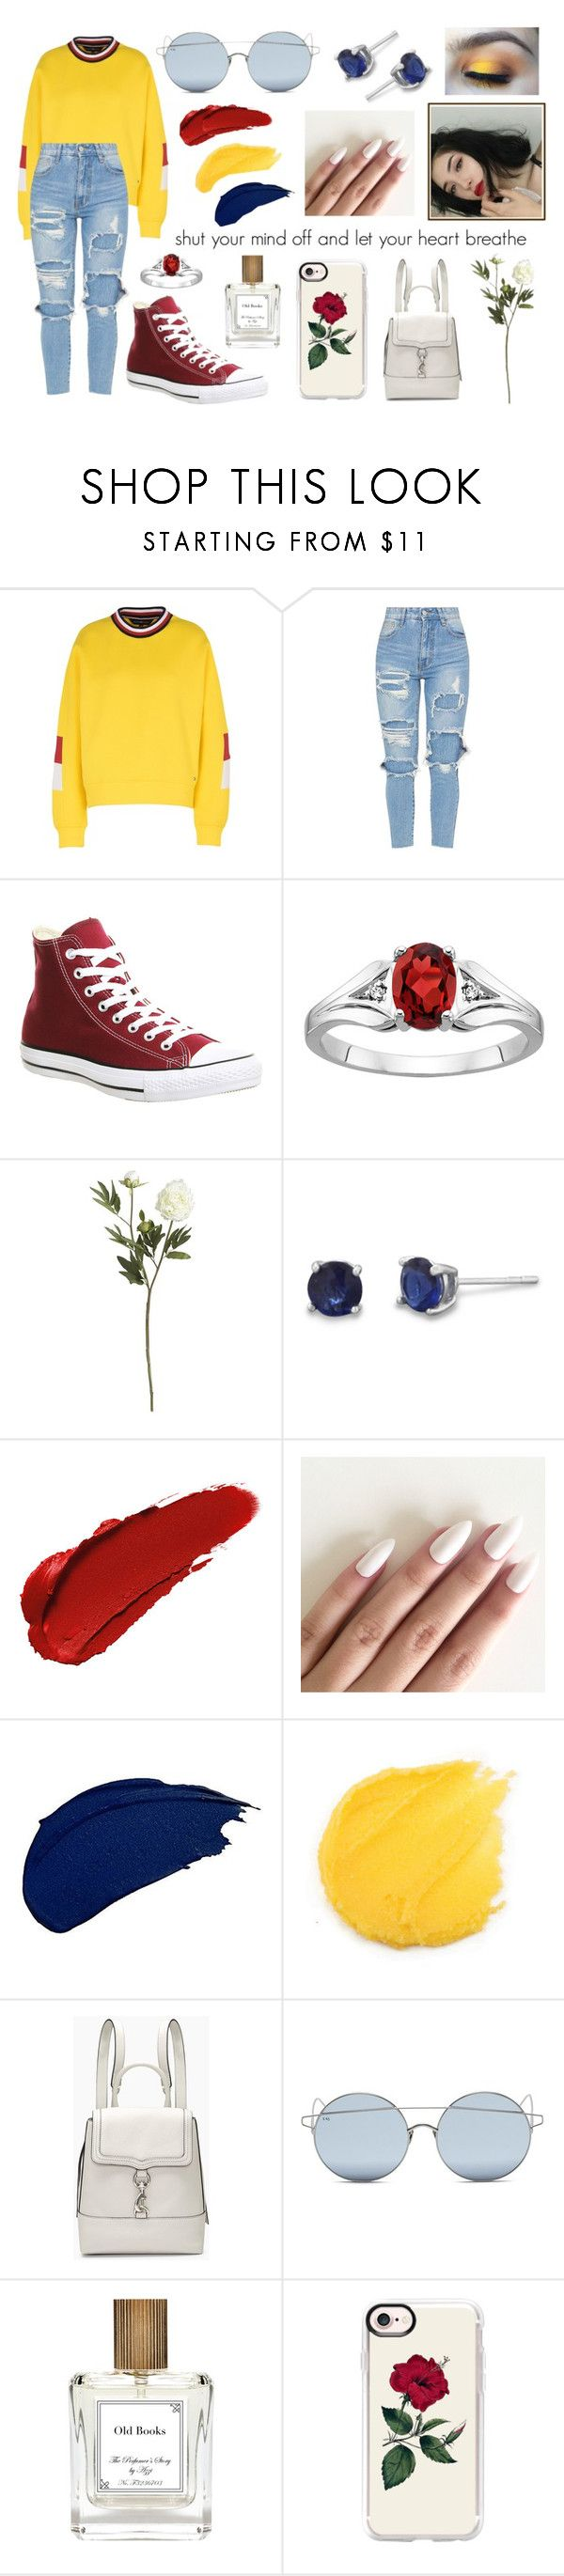 """""""primary"""" by jellymcfarland on Polyvore featuring Tommy Hilfiger, Converse, Crate and Barrel, LASplash, Rebecca Minkoff, For Art's Sake, The Perfumer's Story by Azzi and Casetify"""